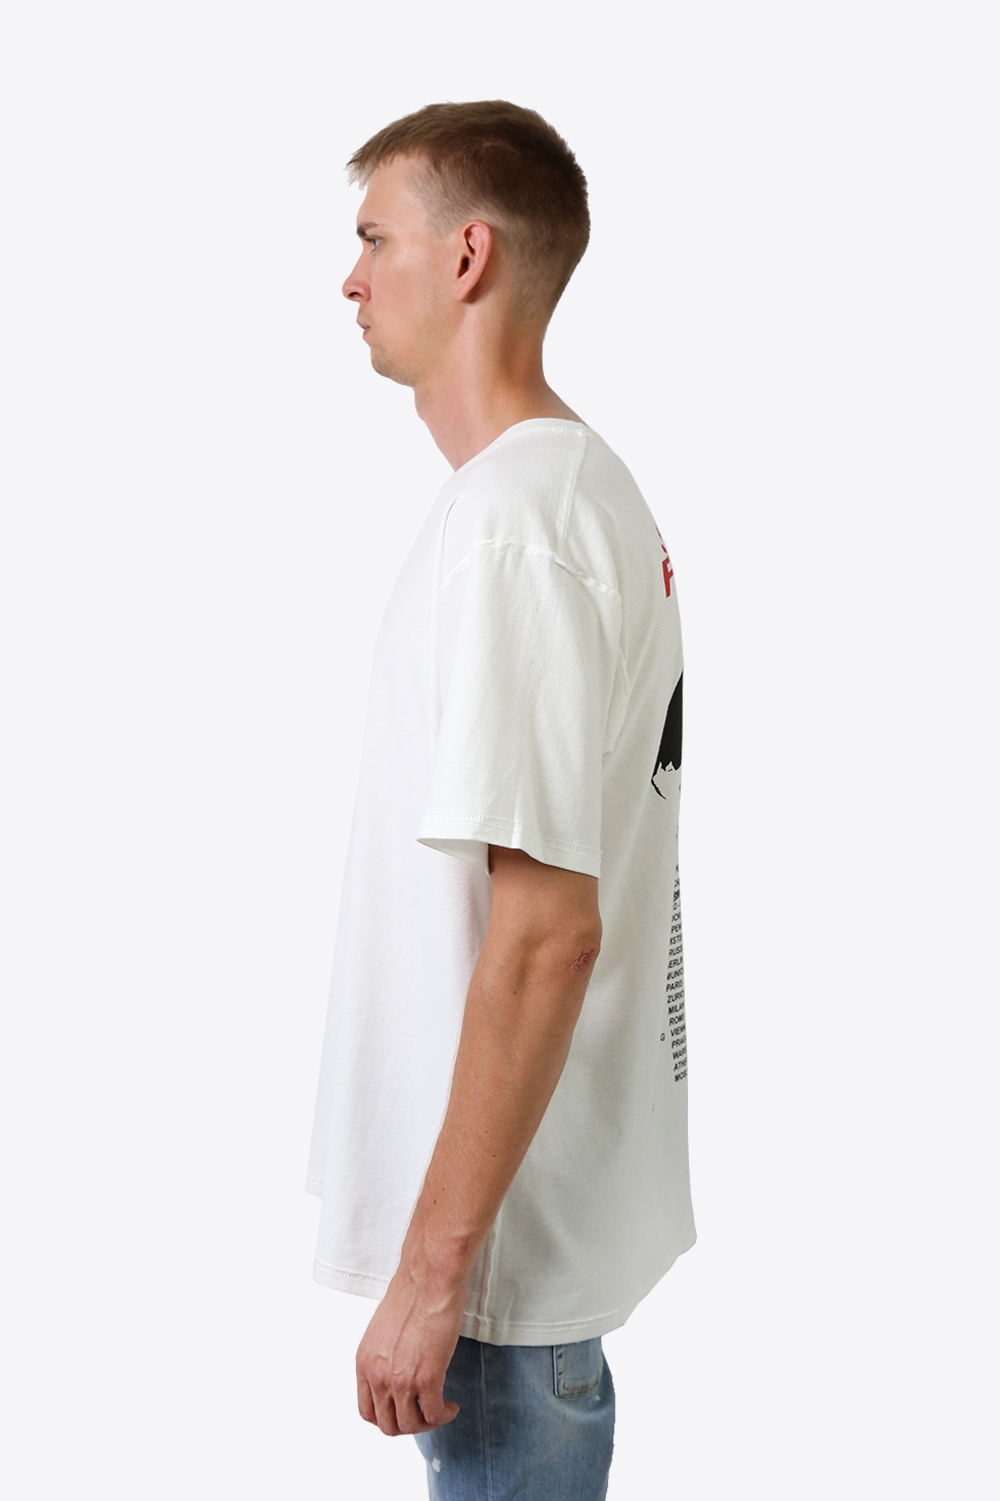 Stand Firm Tour T-shirt - White